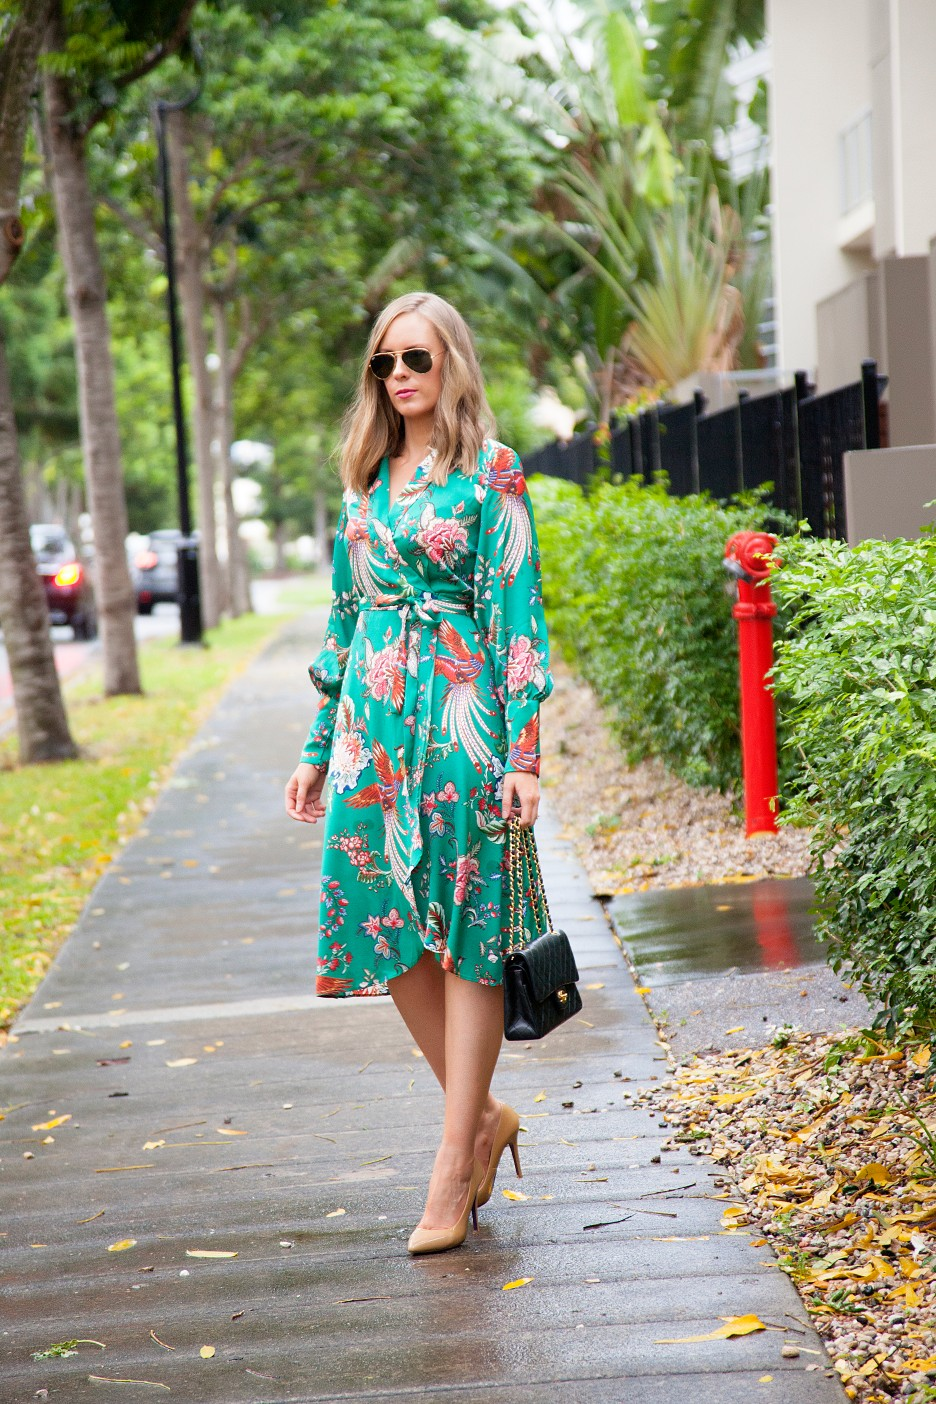 silk pajama print green emerald dress fashion blogger outfit ideas chanel flap handbag lauren slade style elixir 1